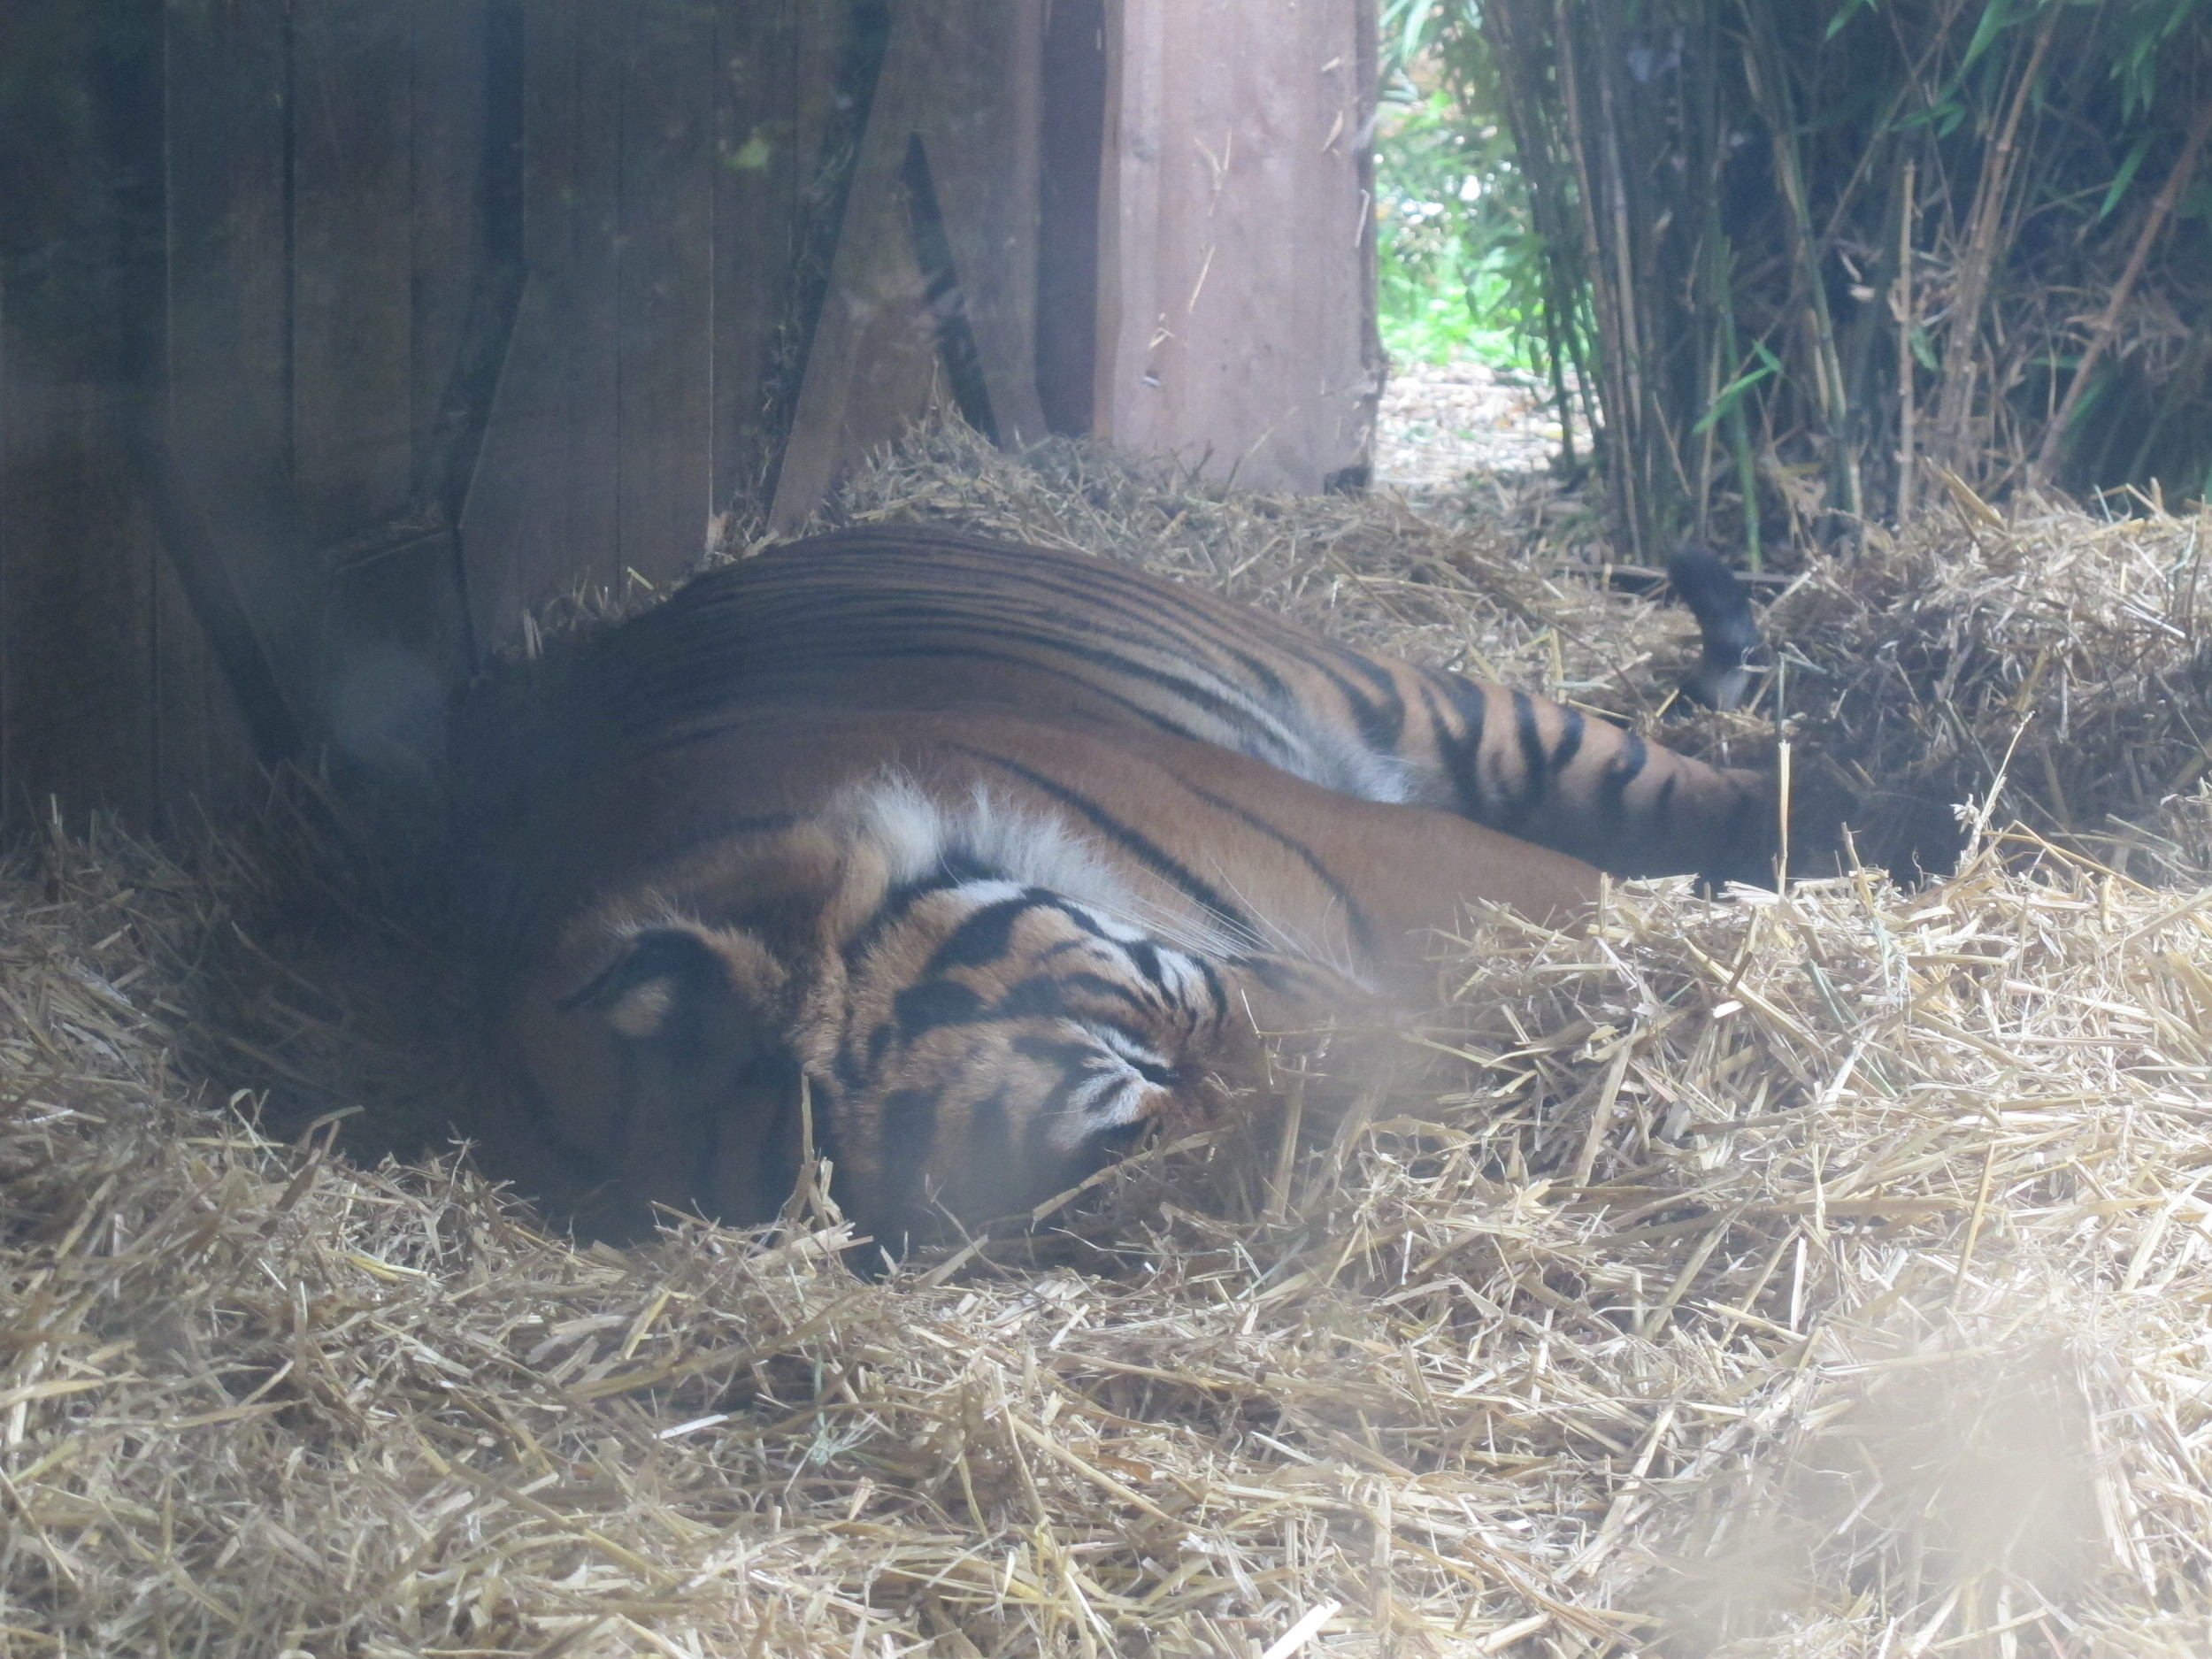 This Sumatran tiger snoozed through our visit, but presumably would be pleased to know that the zoo is building a much larger tiger enclosure that will try to recreate an Indonesian rainforest environment and will open in early 2013.